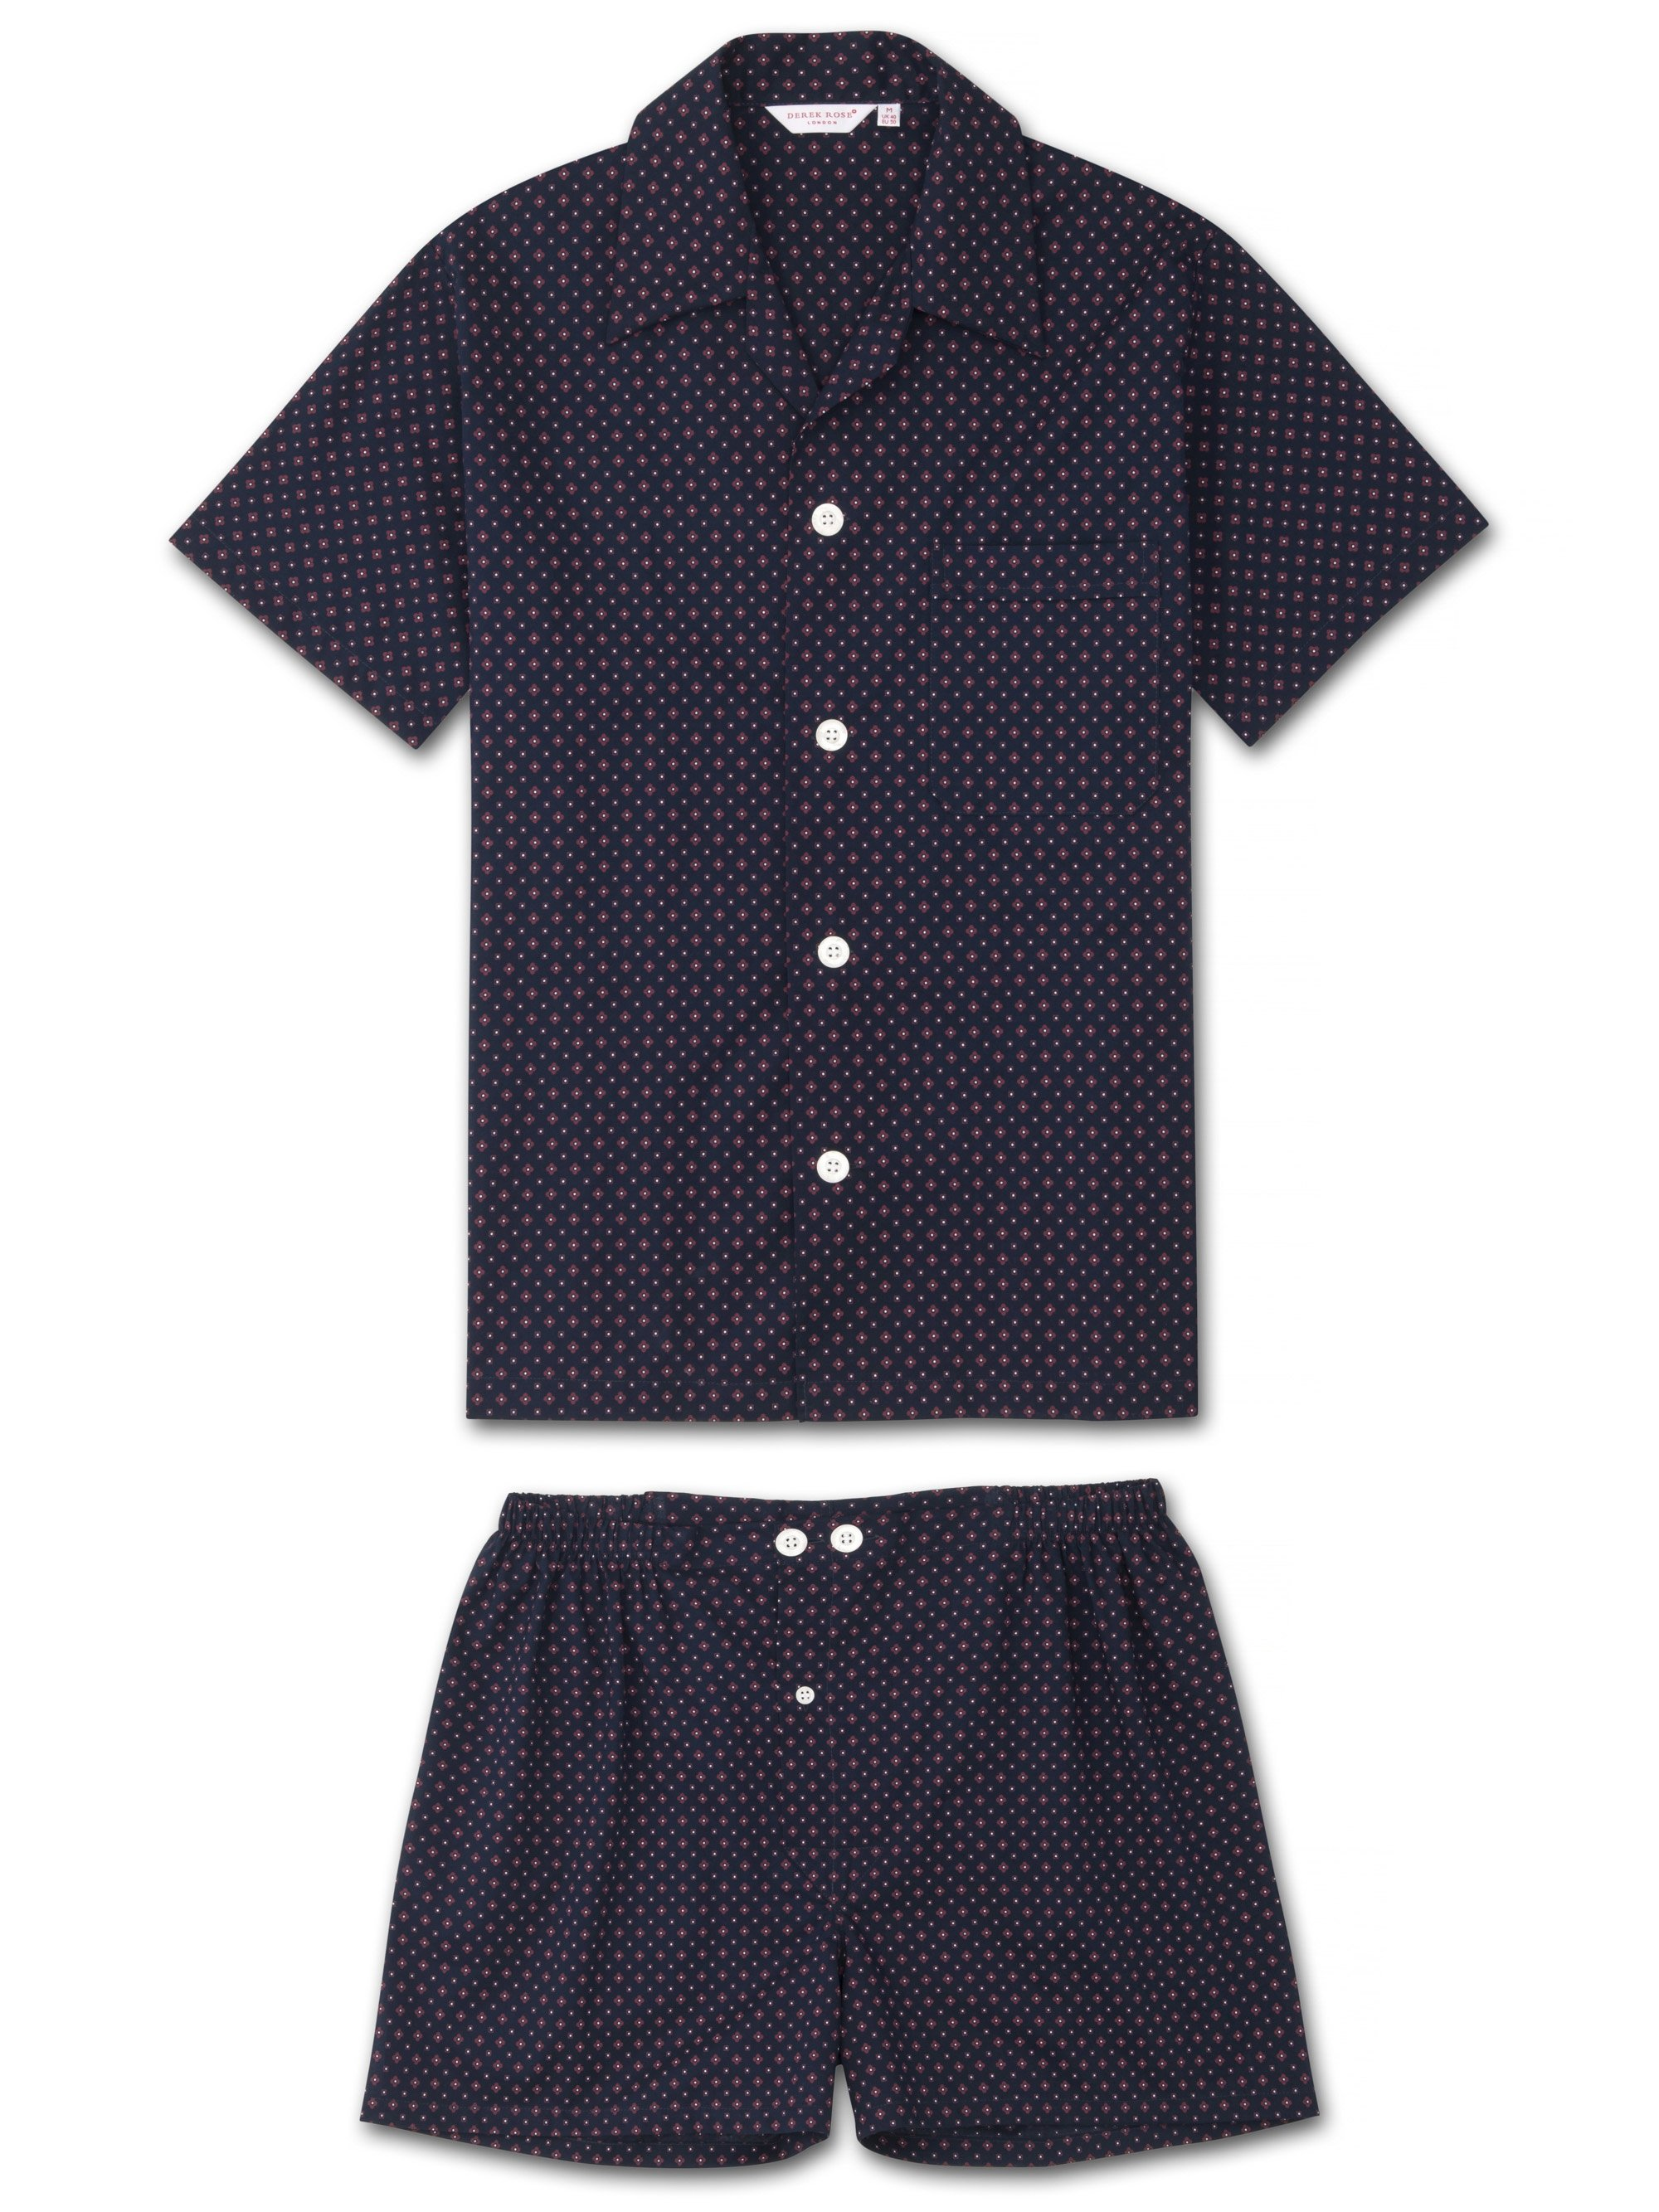 Men's Short Pyjamas Nelson 72 Cotton Batiste Navy